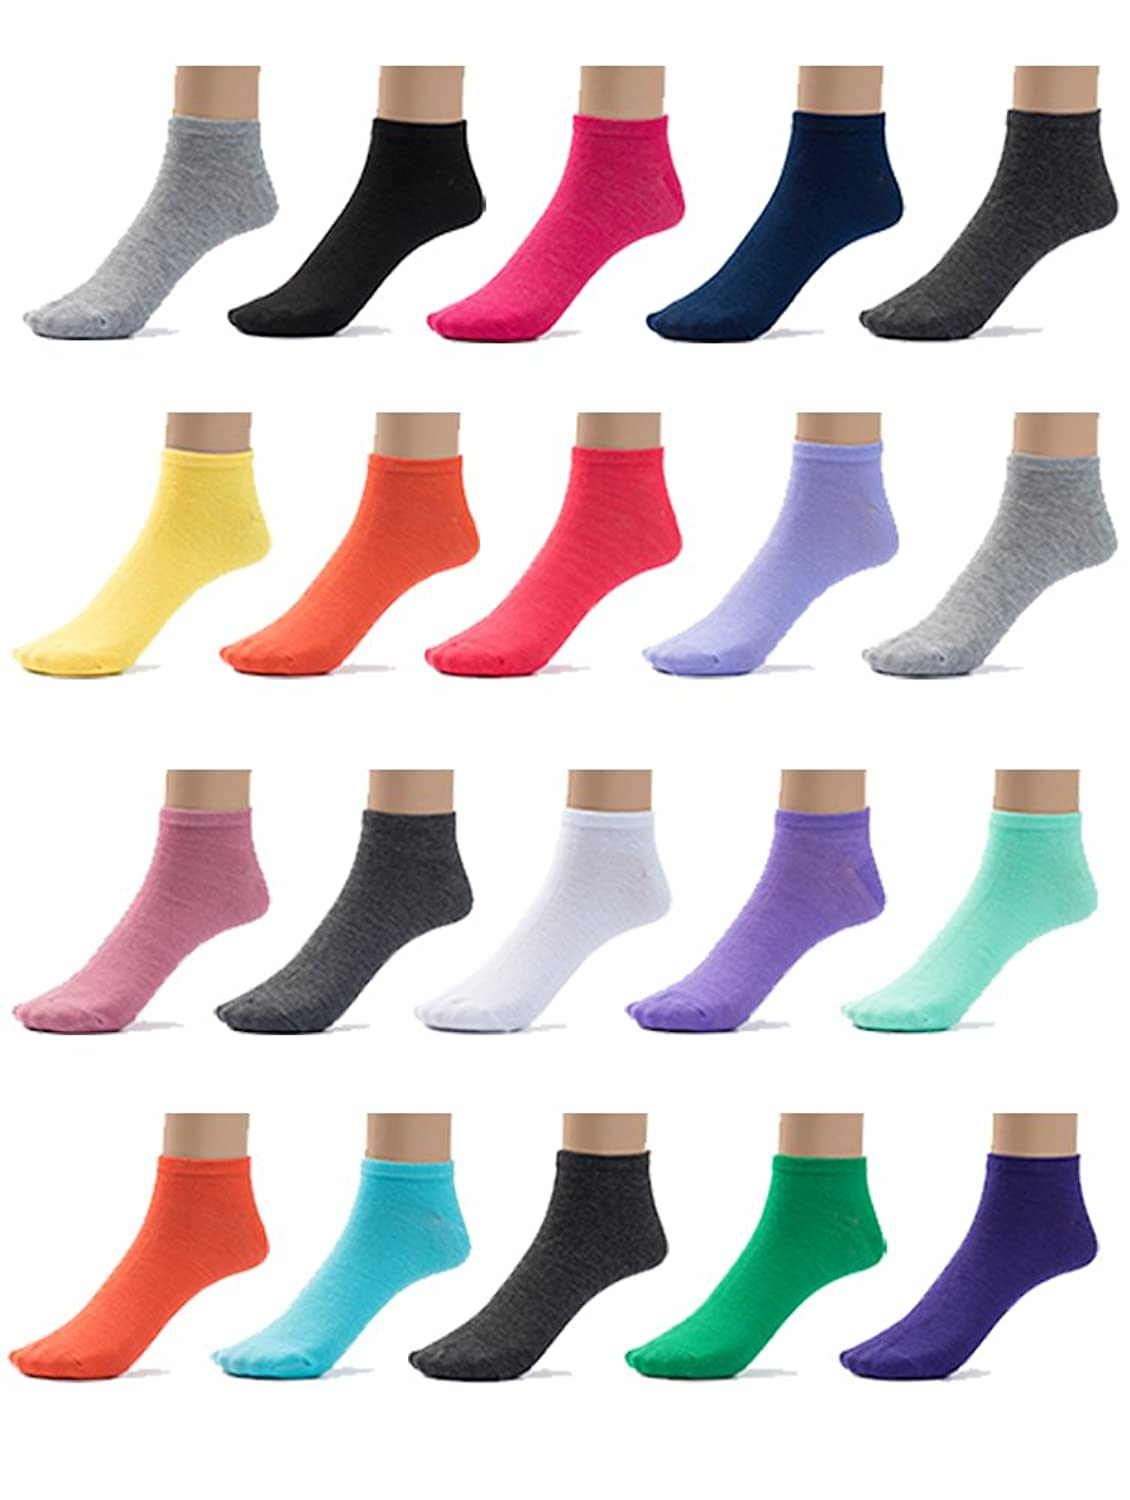 20 Pairs Womens Colorful Patterned Low Cut No Show Socks, Multi Pack by ComfortnFashion